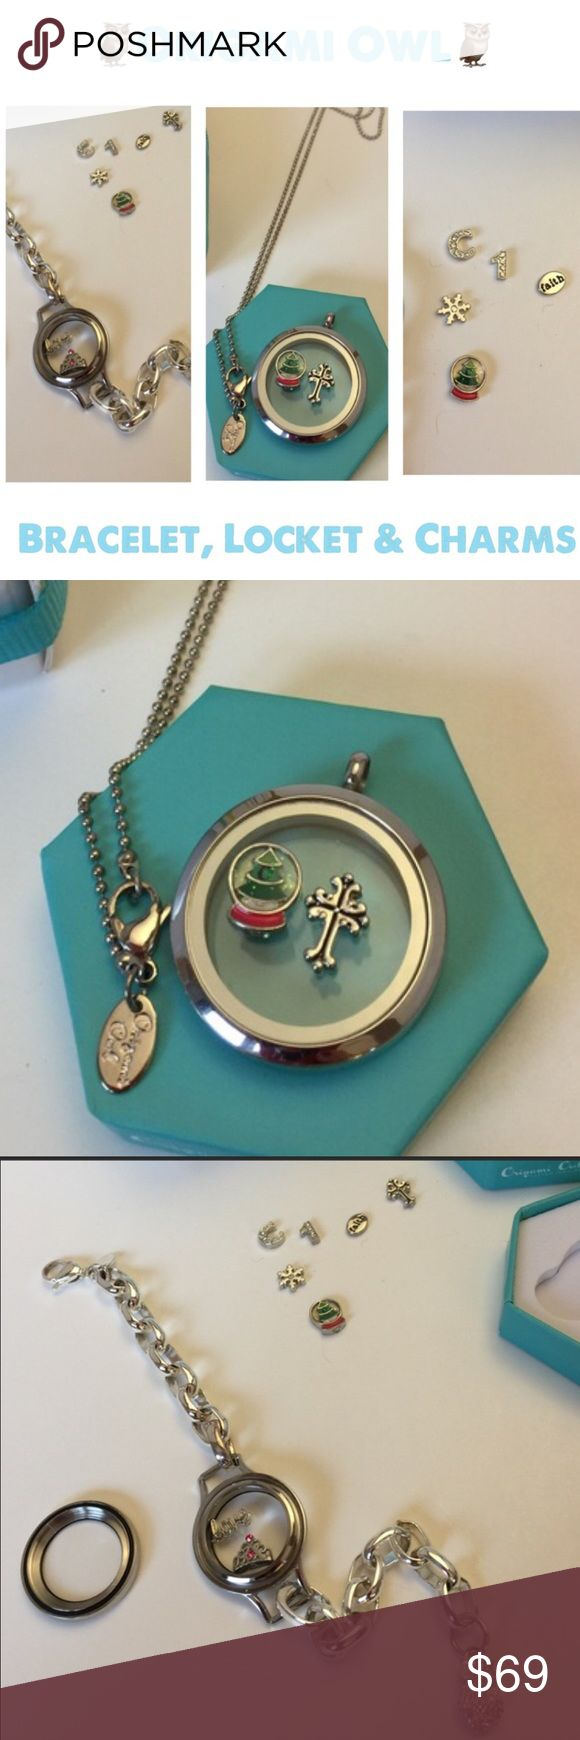 NEW 💕Origami Owl Living Locket Bracelet & Pendant NEW 💕 Origami Owl Living Locket Bracelet & Pendant 💕8 Charms 💕 Entire Collection 💕 I will consider selling individually! 💕 Origami Owl Jewelry